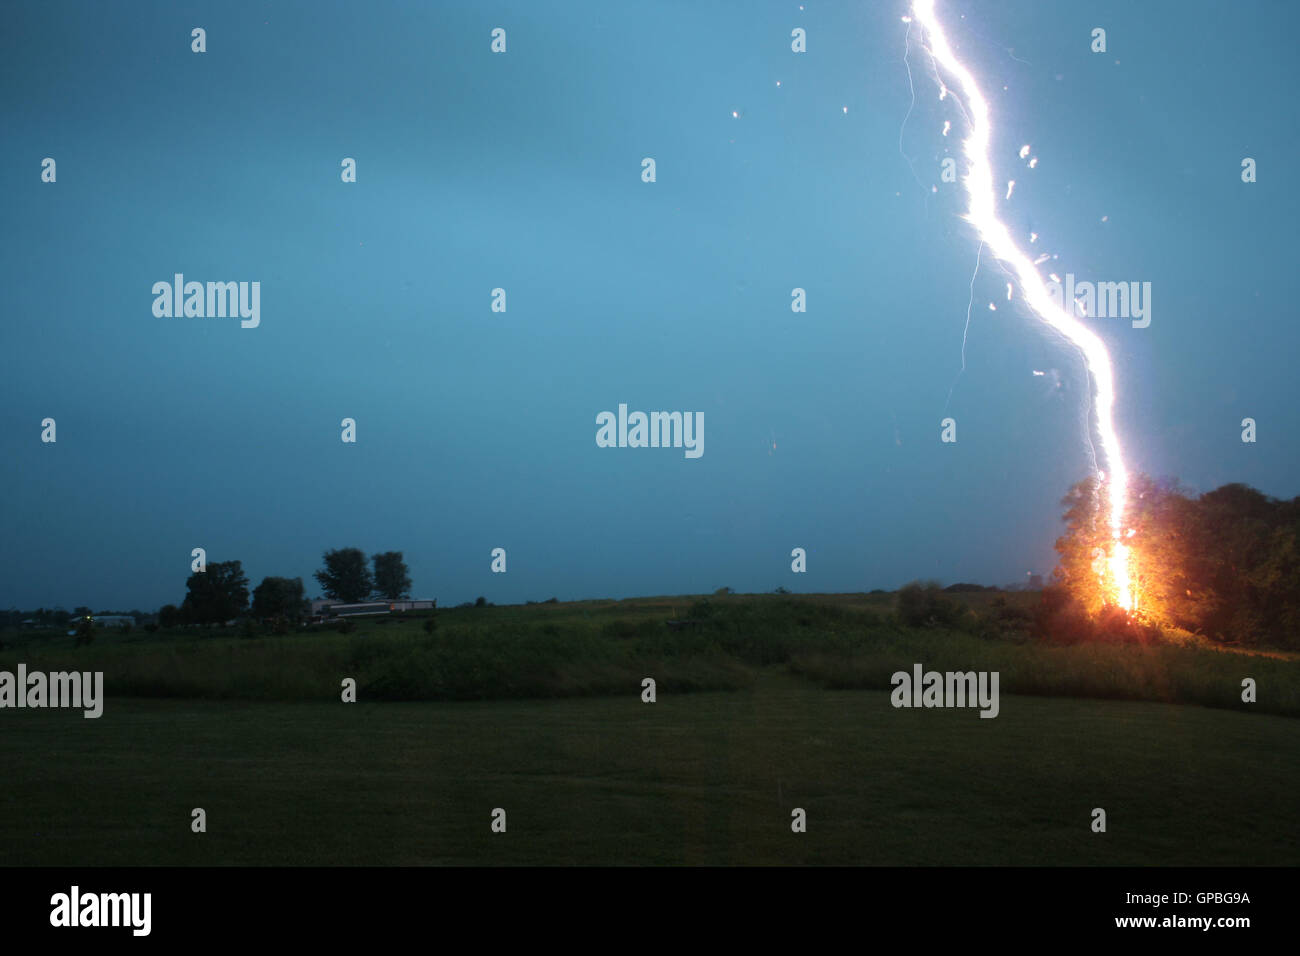 A bolt of lightning striking a tree in a field Stock Photo